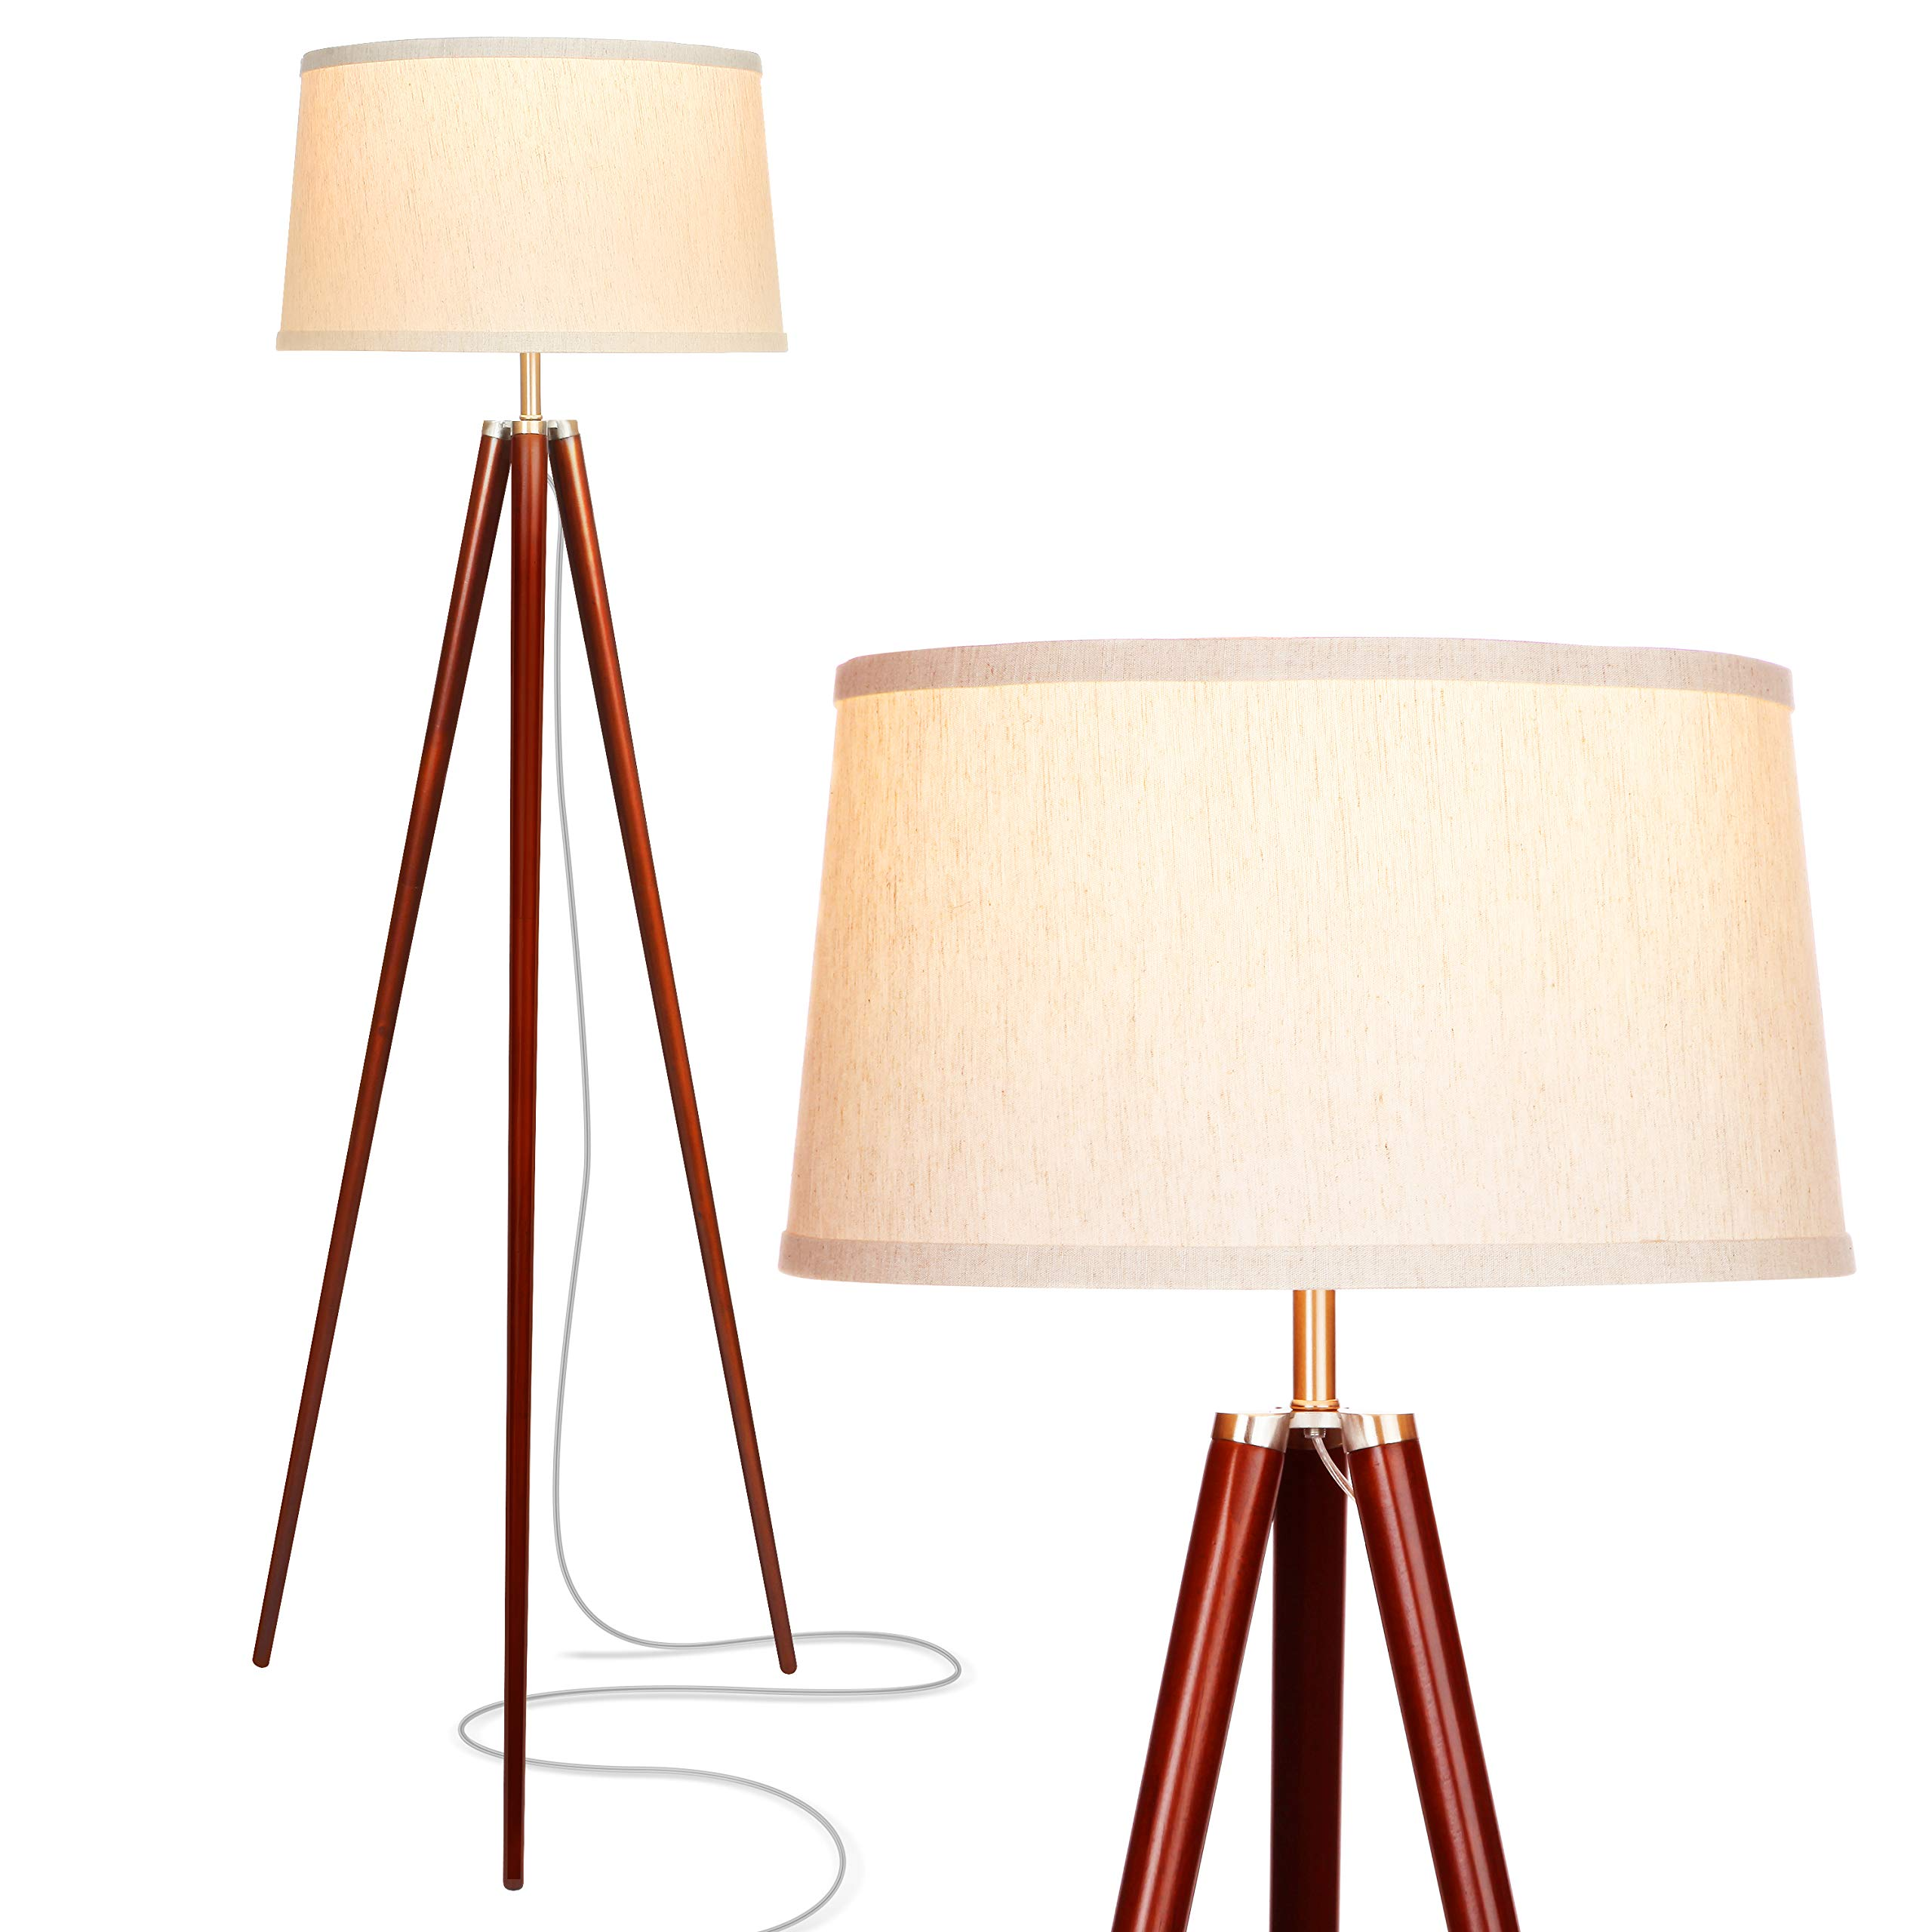 Brightech Emma LED Tripod Floor Lamp - Mid Century Modern Standing Light for Contemporary Living Rooms - Tall Survey Lamp with Wood Legs for Bedroom, Office - Walnut Brown